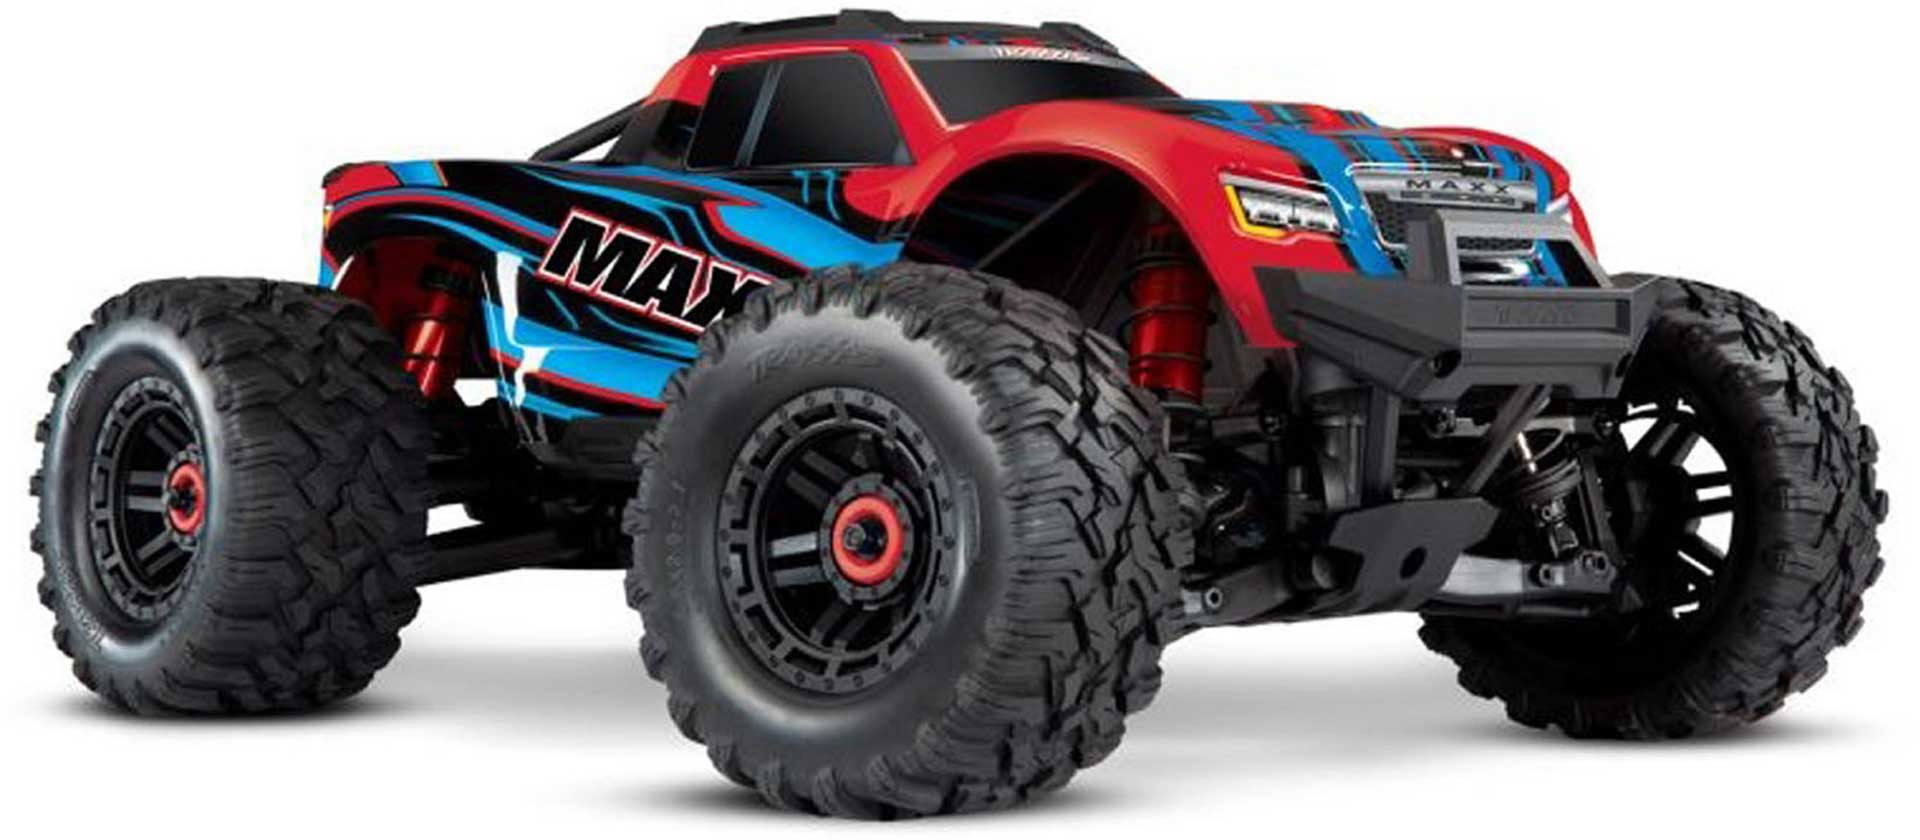 TRAXXAS MAXX RED/BLUE 1/10 RTR TSM SR VXL-4S WITHOUT BATTERY AND CHARGER